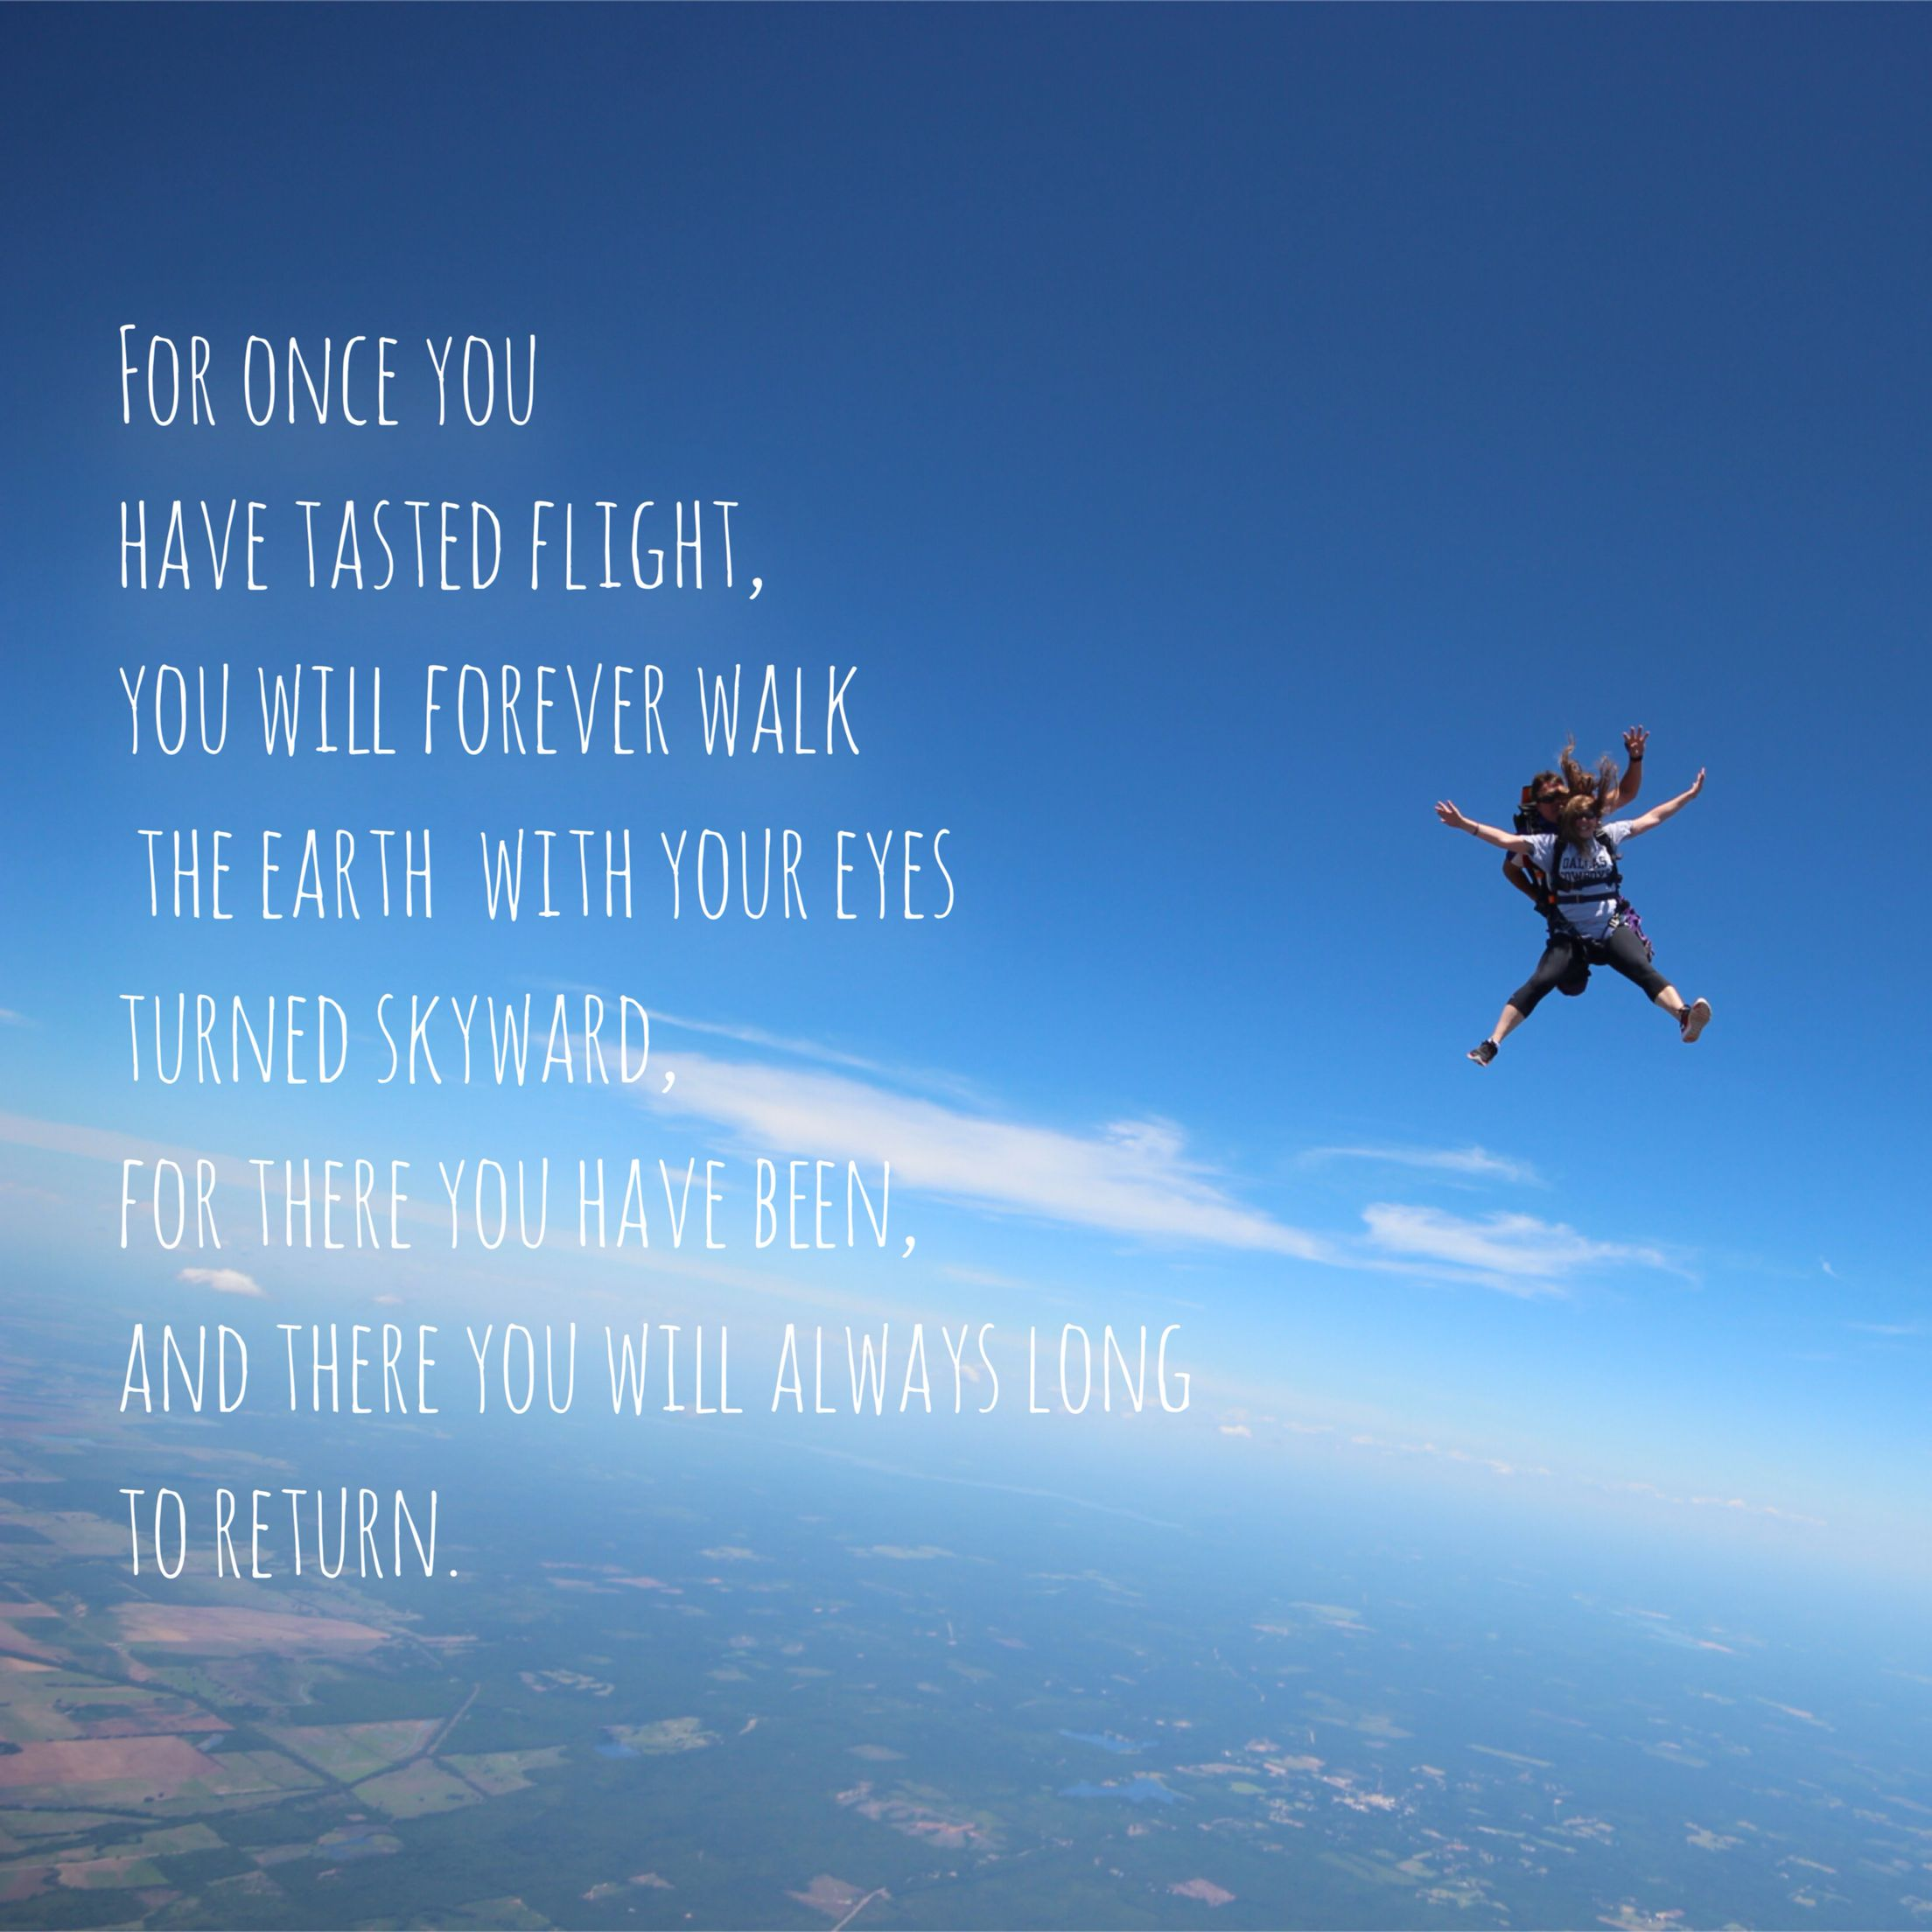 Amazing Skydiving Quotes Kissingclouds Adventure Coulds Blueskies Skydiving Quotes Fly Quotes Skydiving